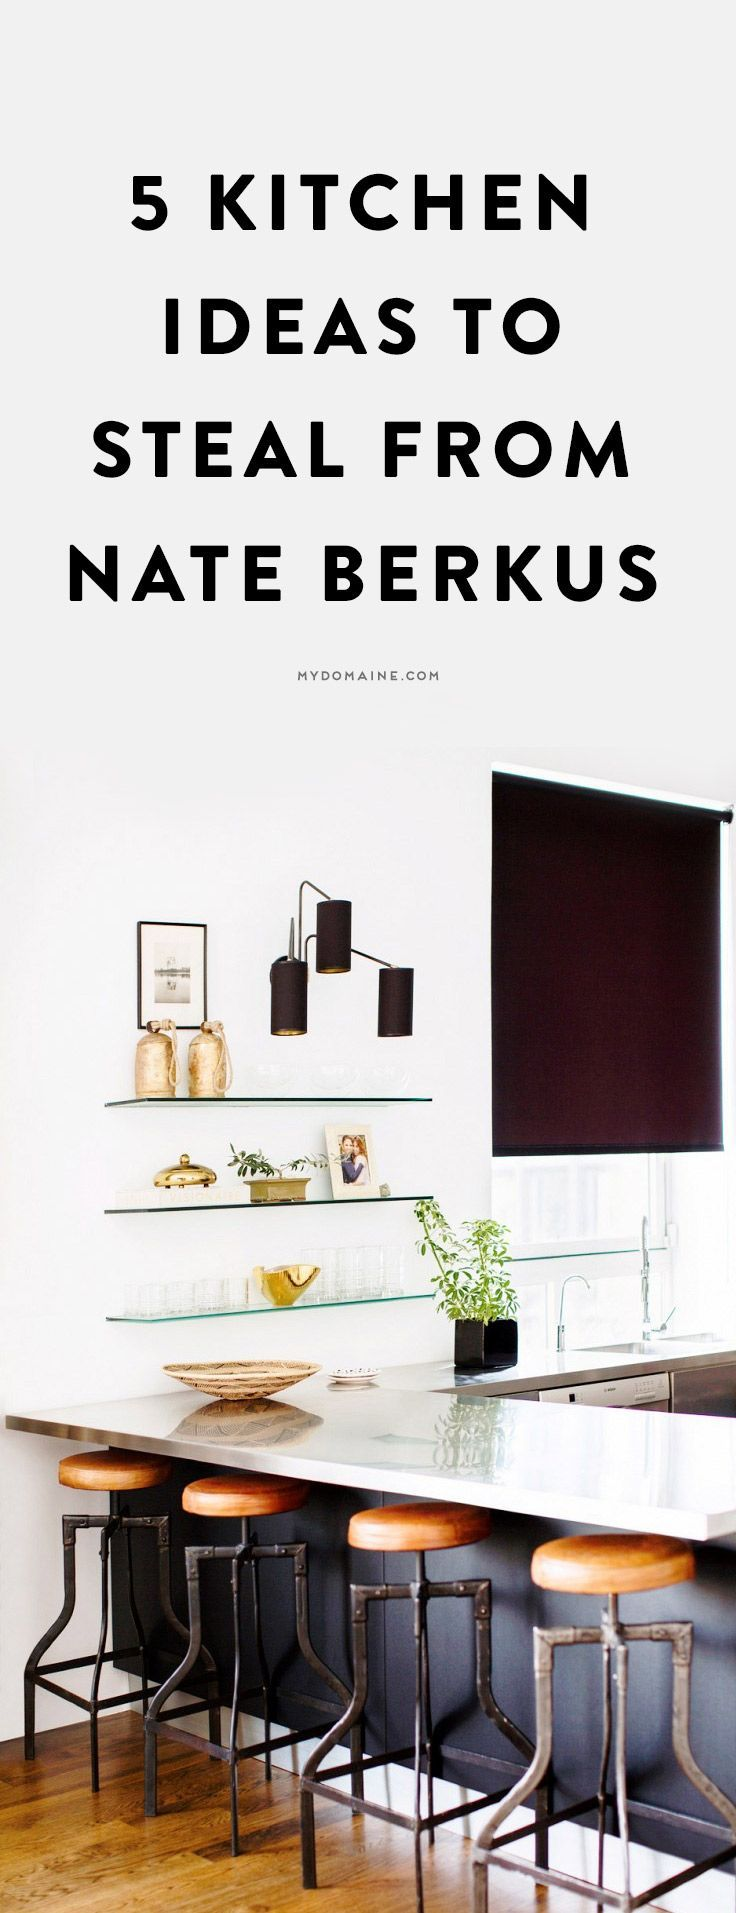 5 ideas to steal from nate berkus s kitchen designs the Nate berkus kitchen design